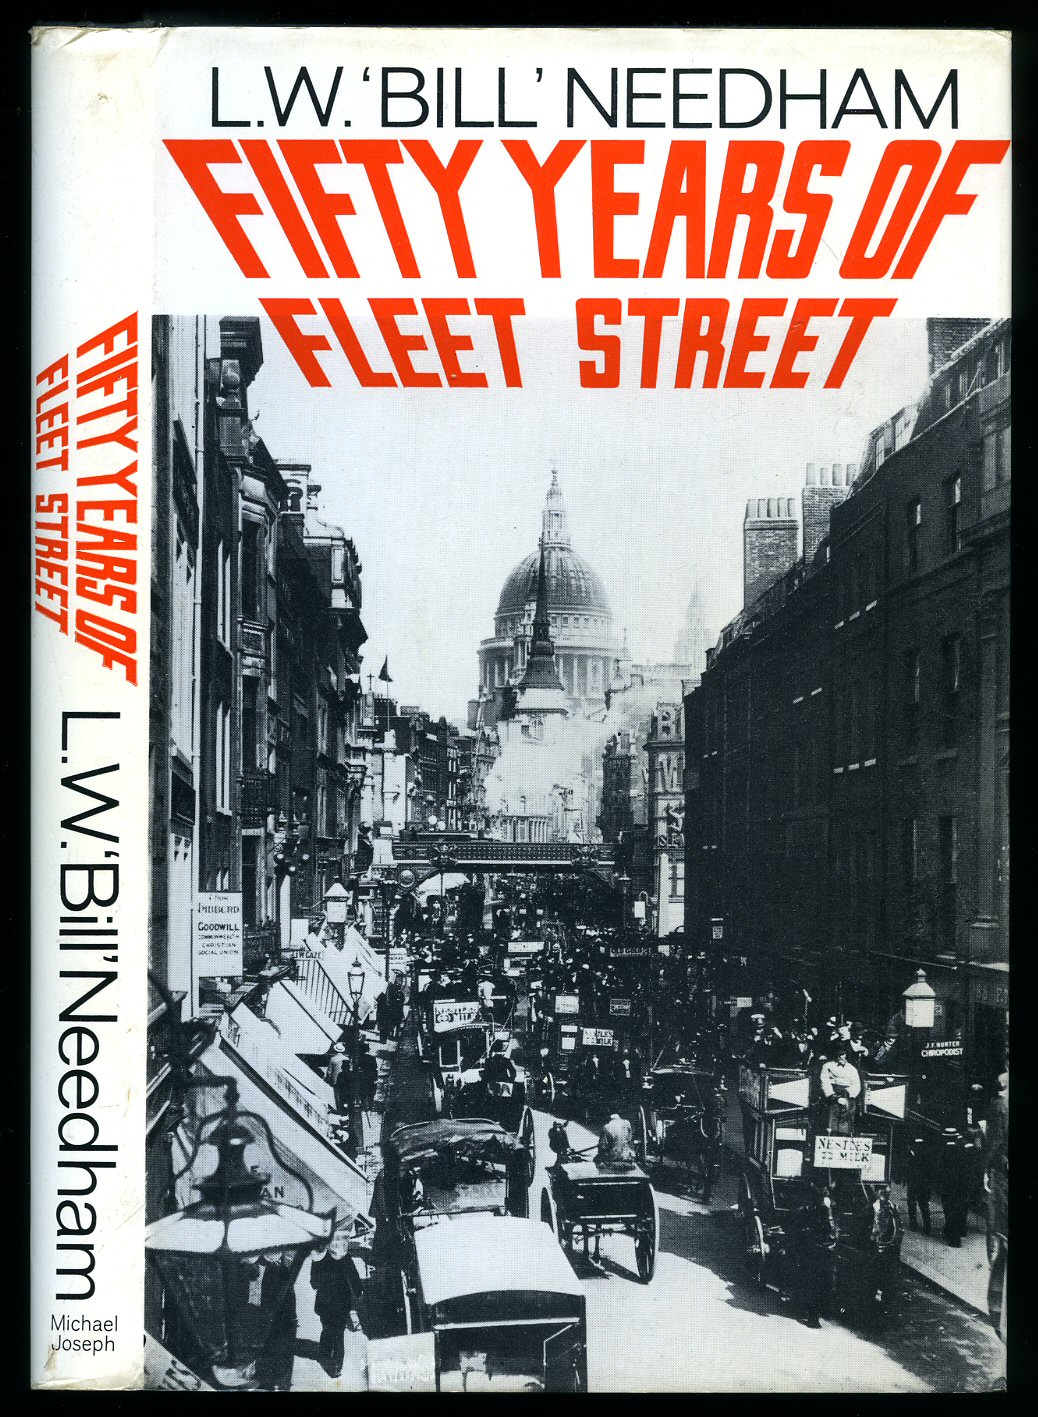 NEEDHAM, L. W. 'BILL' [JACKET DRAWING OF AUTHOR BY JACK GILROY ] - 50 Years of Fleet Street